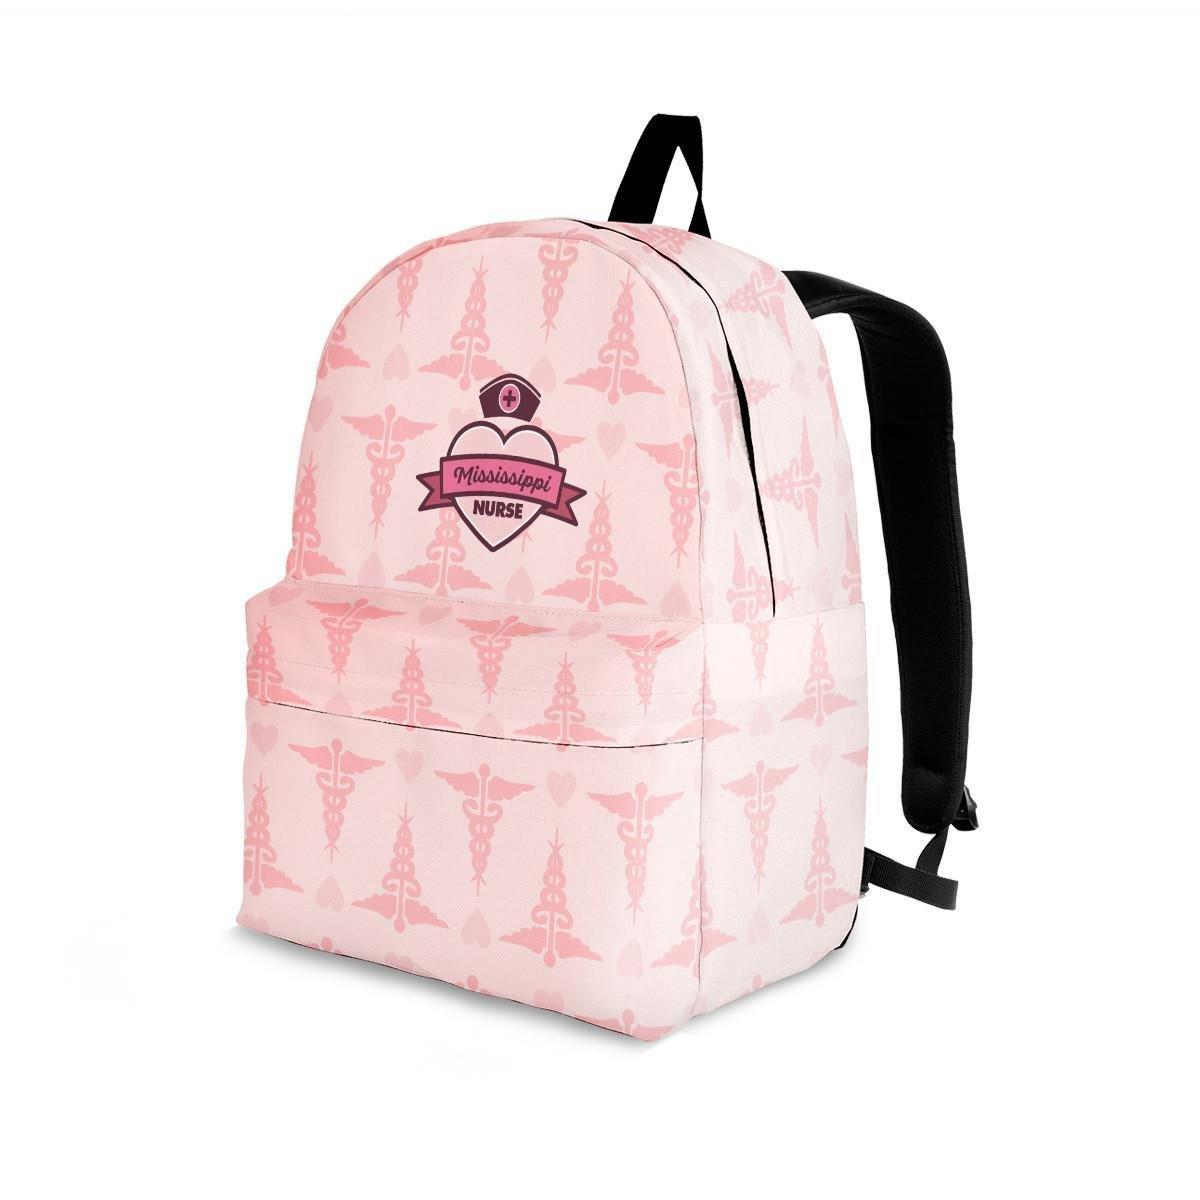 MS Nurse Pink Backpack